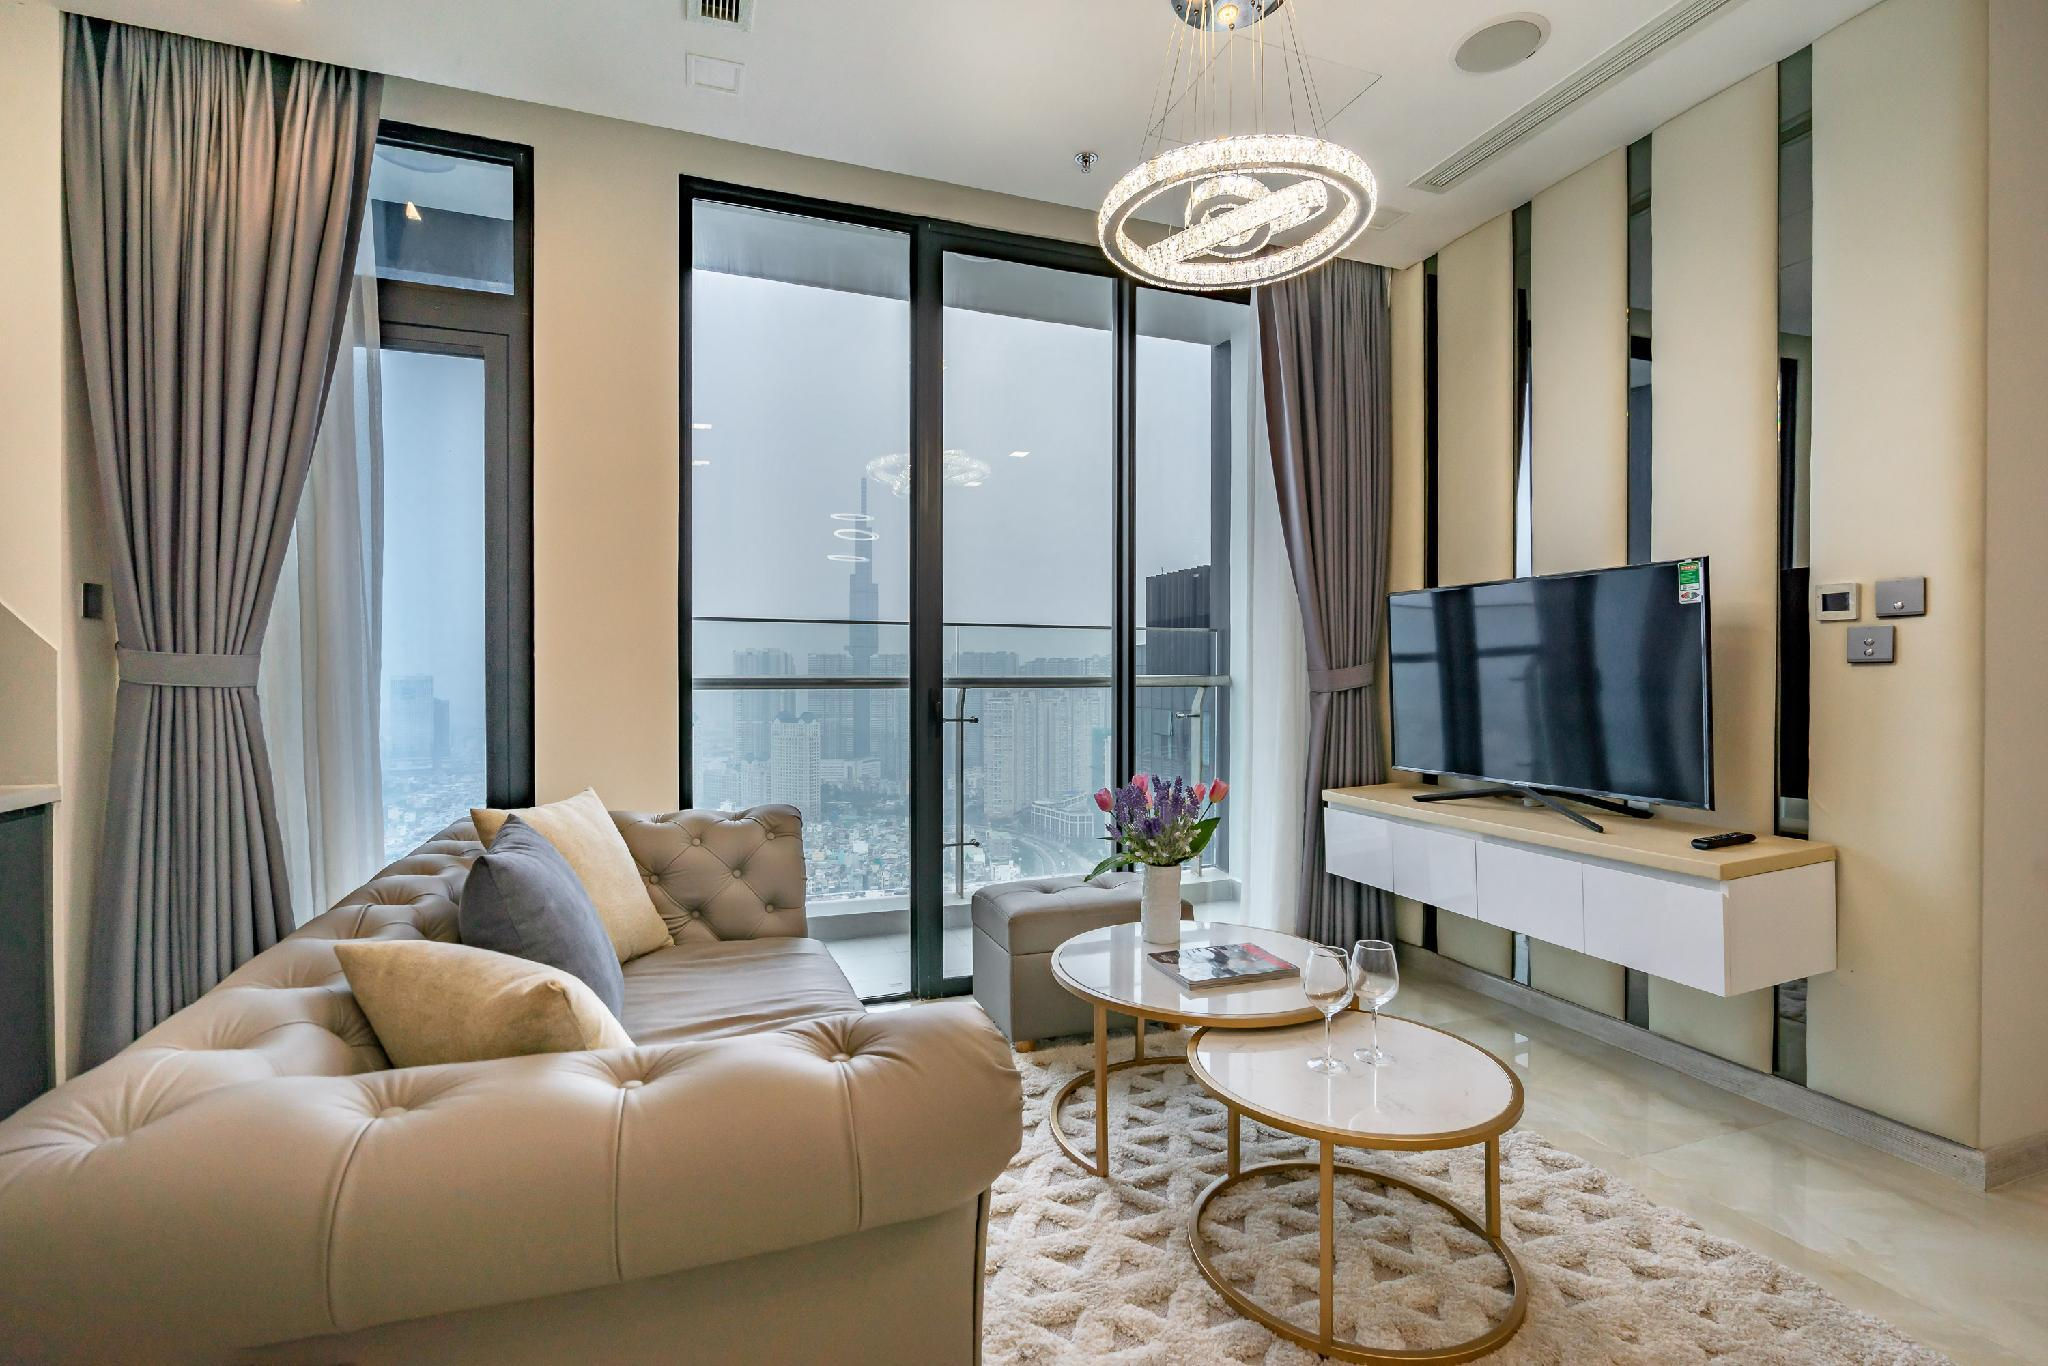 2 LUXURY BEDRS SUITES W VIEWS In Central District